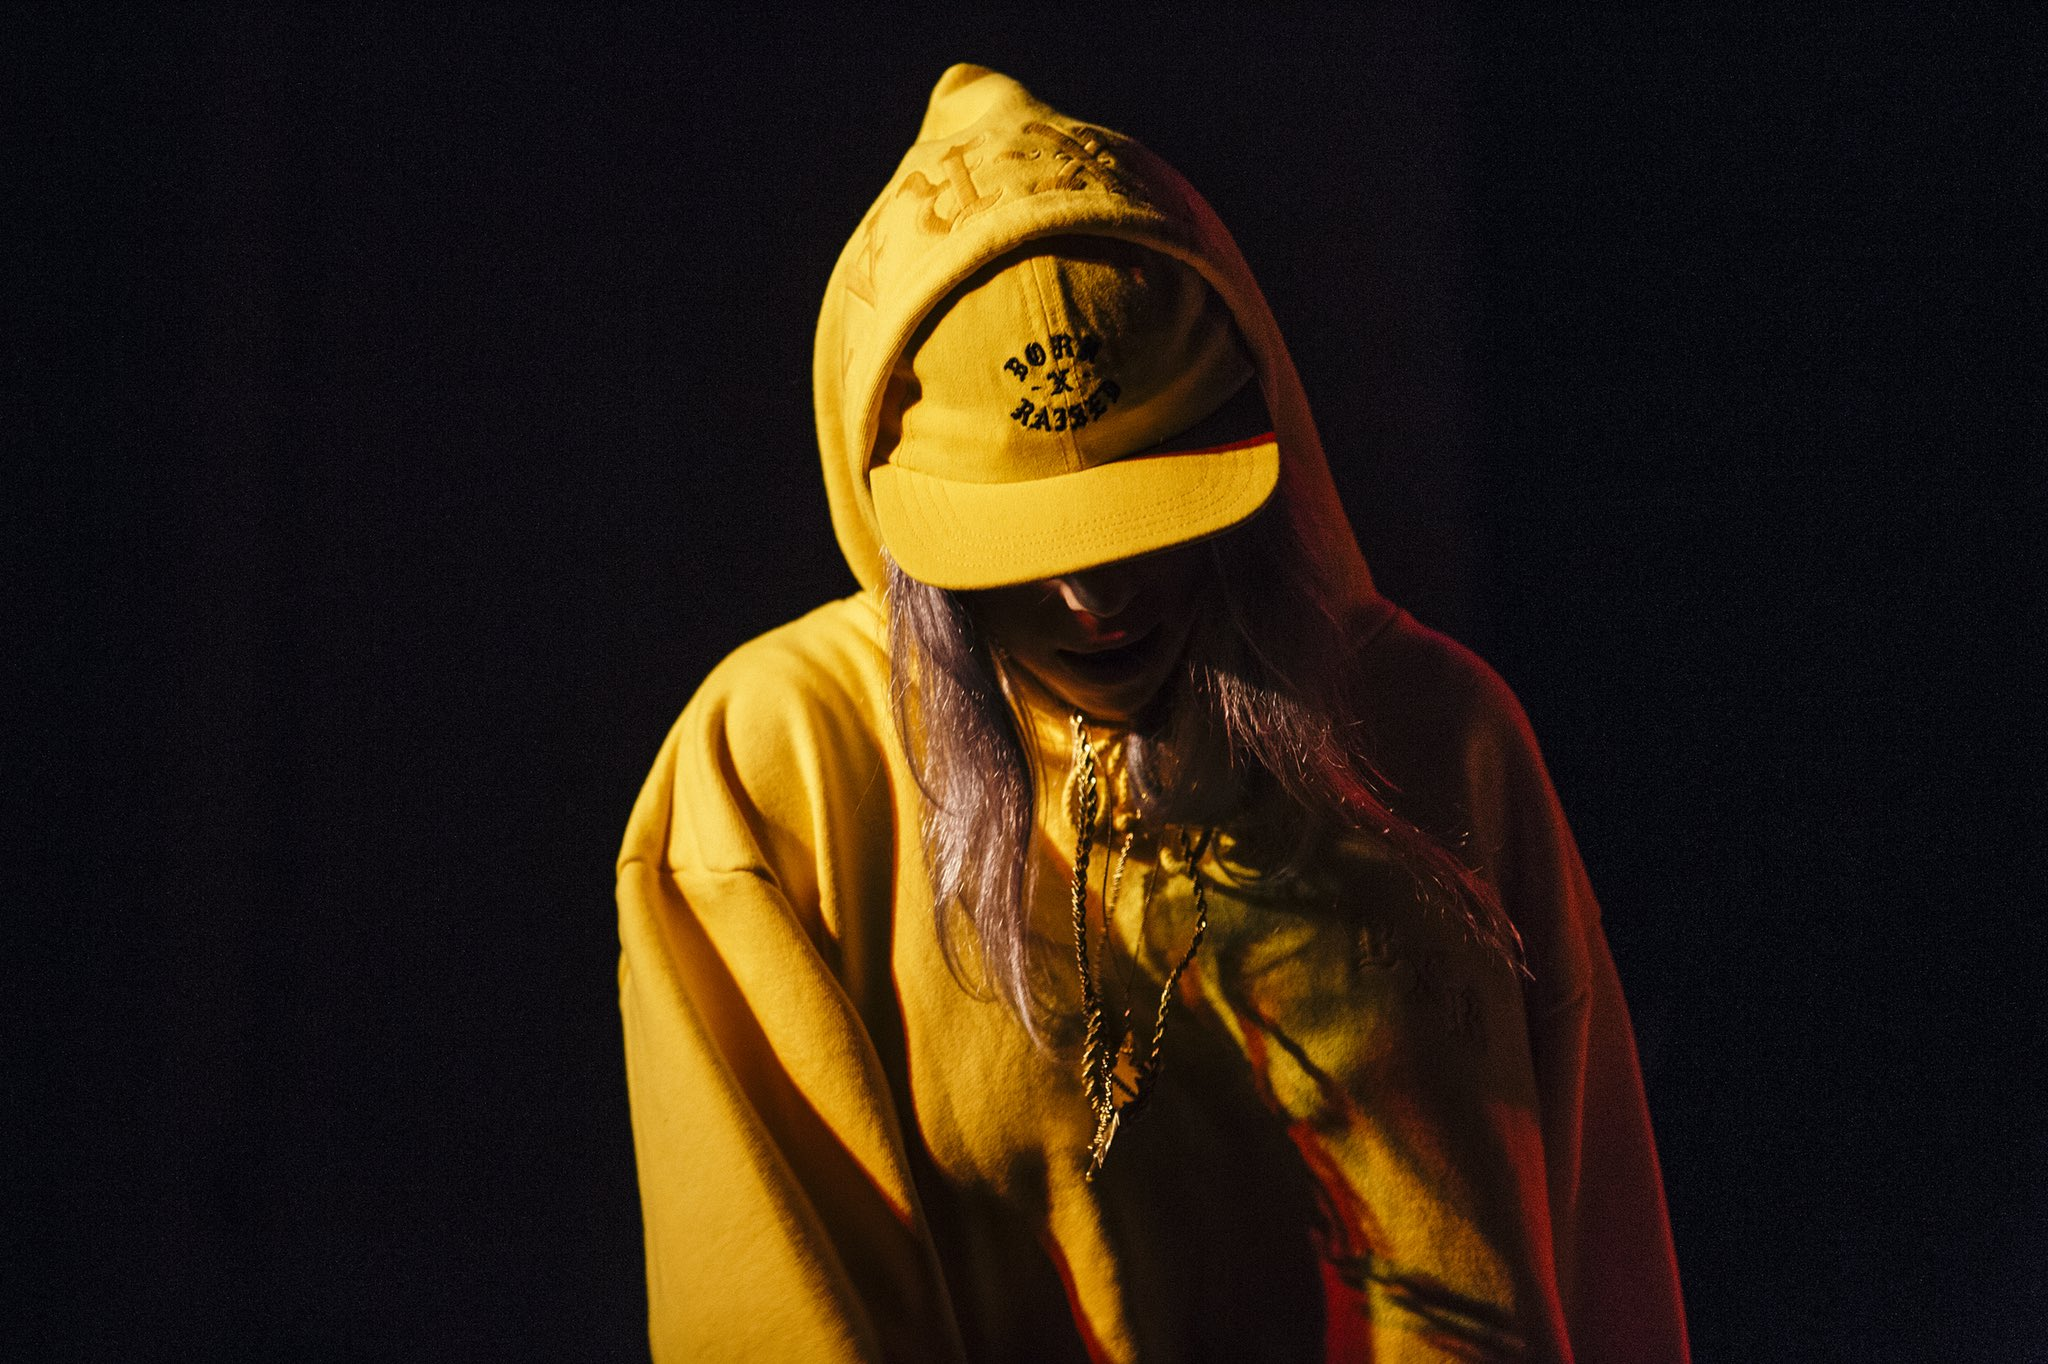 .@billieeilish performing at the @sxsw @PeppermintClub_ x @wfnm Showcase. Photos by @GregNoire. https://t.co/0wtc9NXyvl